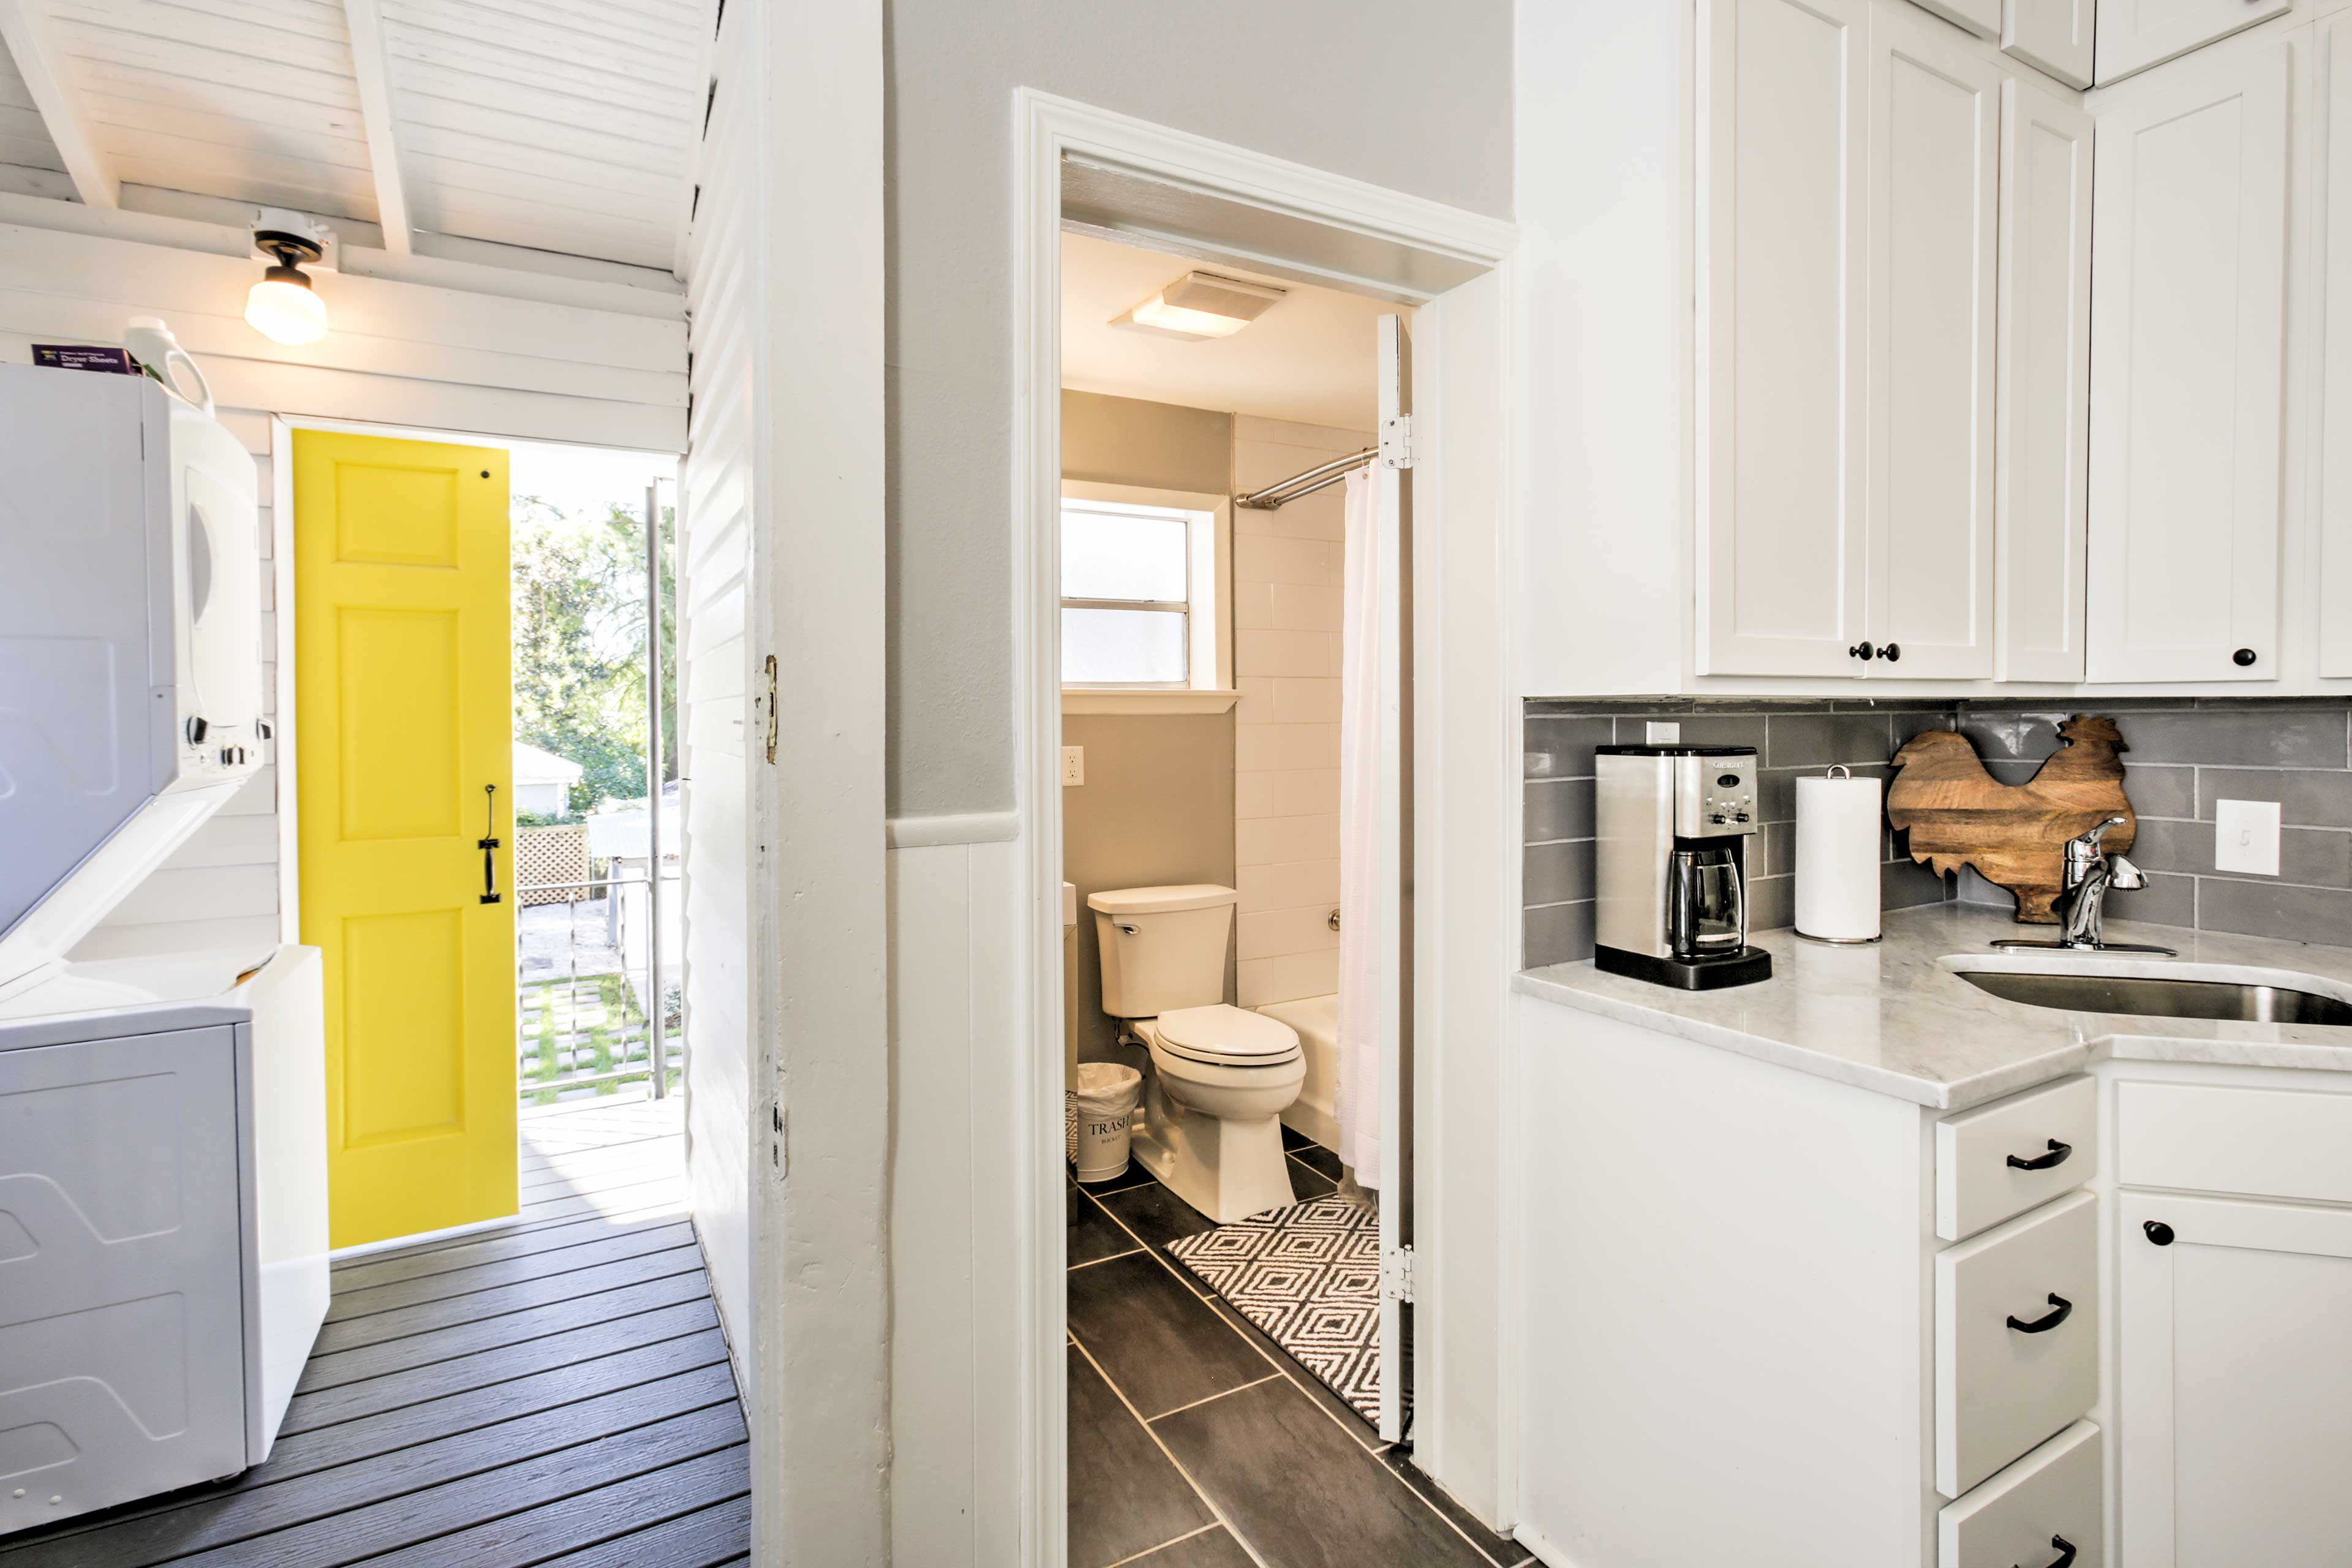 This apartment features 1 bathroom adjacent to the kitchen.